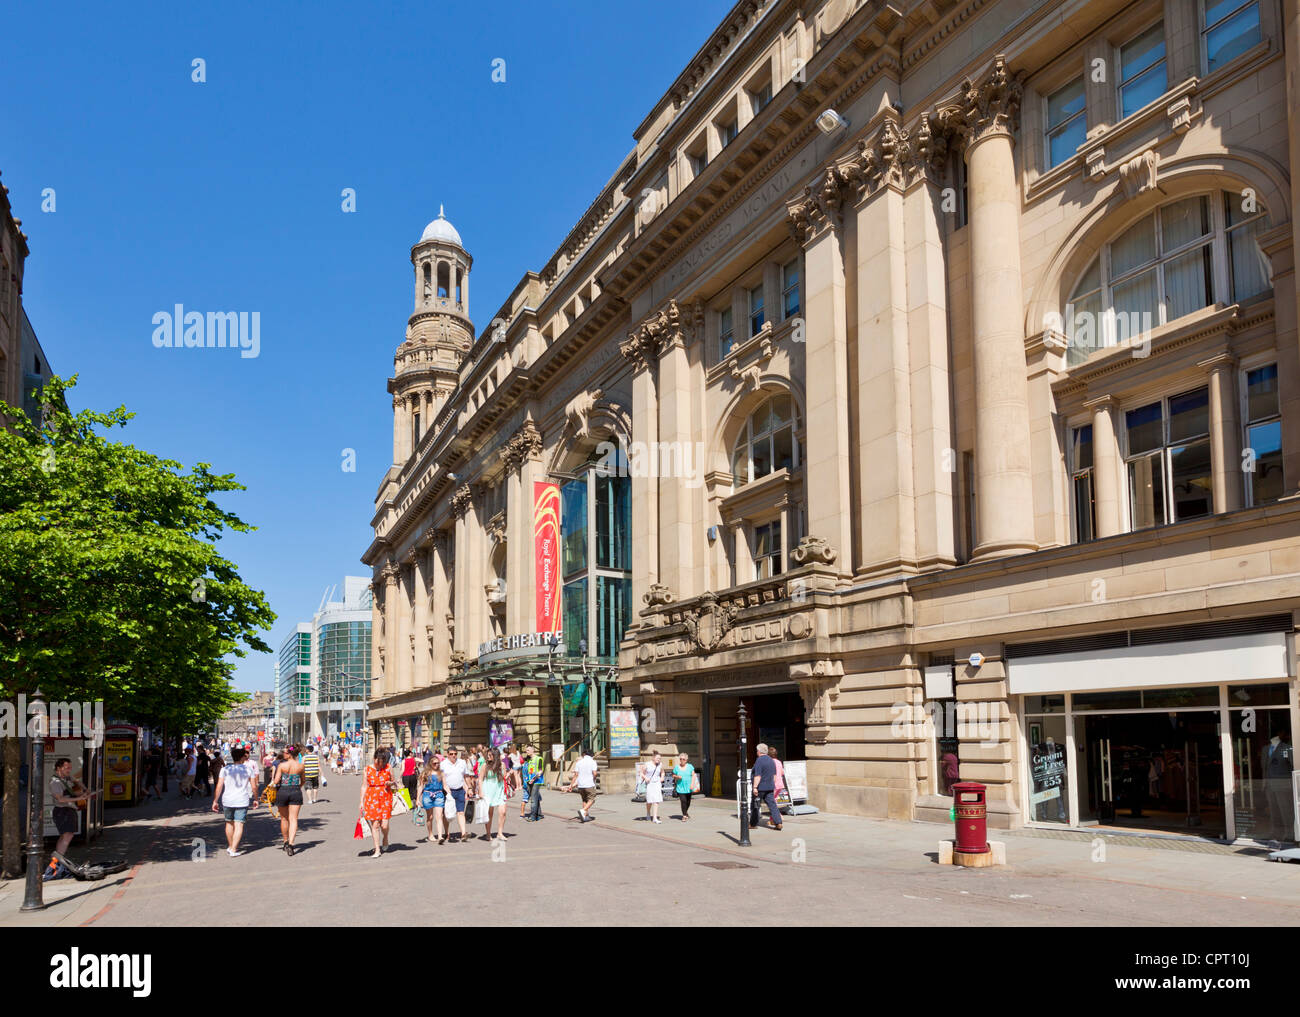 The Royal Exchange Theatre St Anns Square Manchester city centre Greater Manchester England UK GB EU Europe - Stock Image